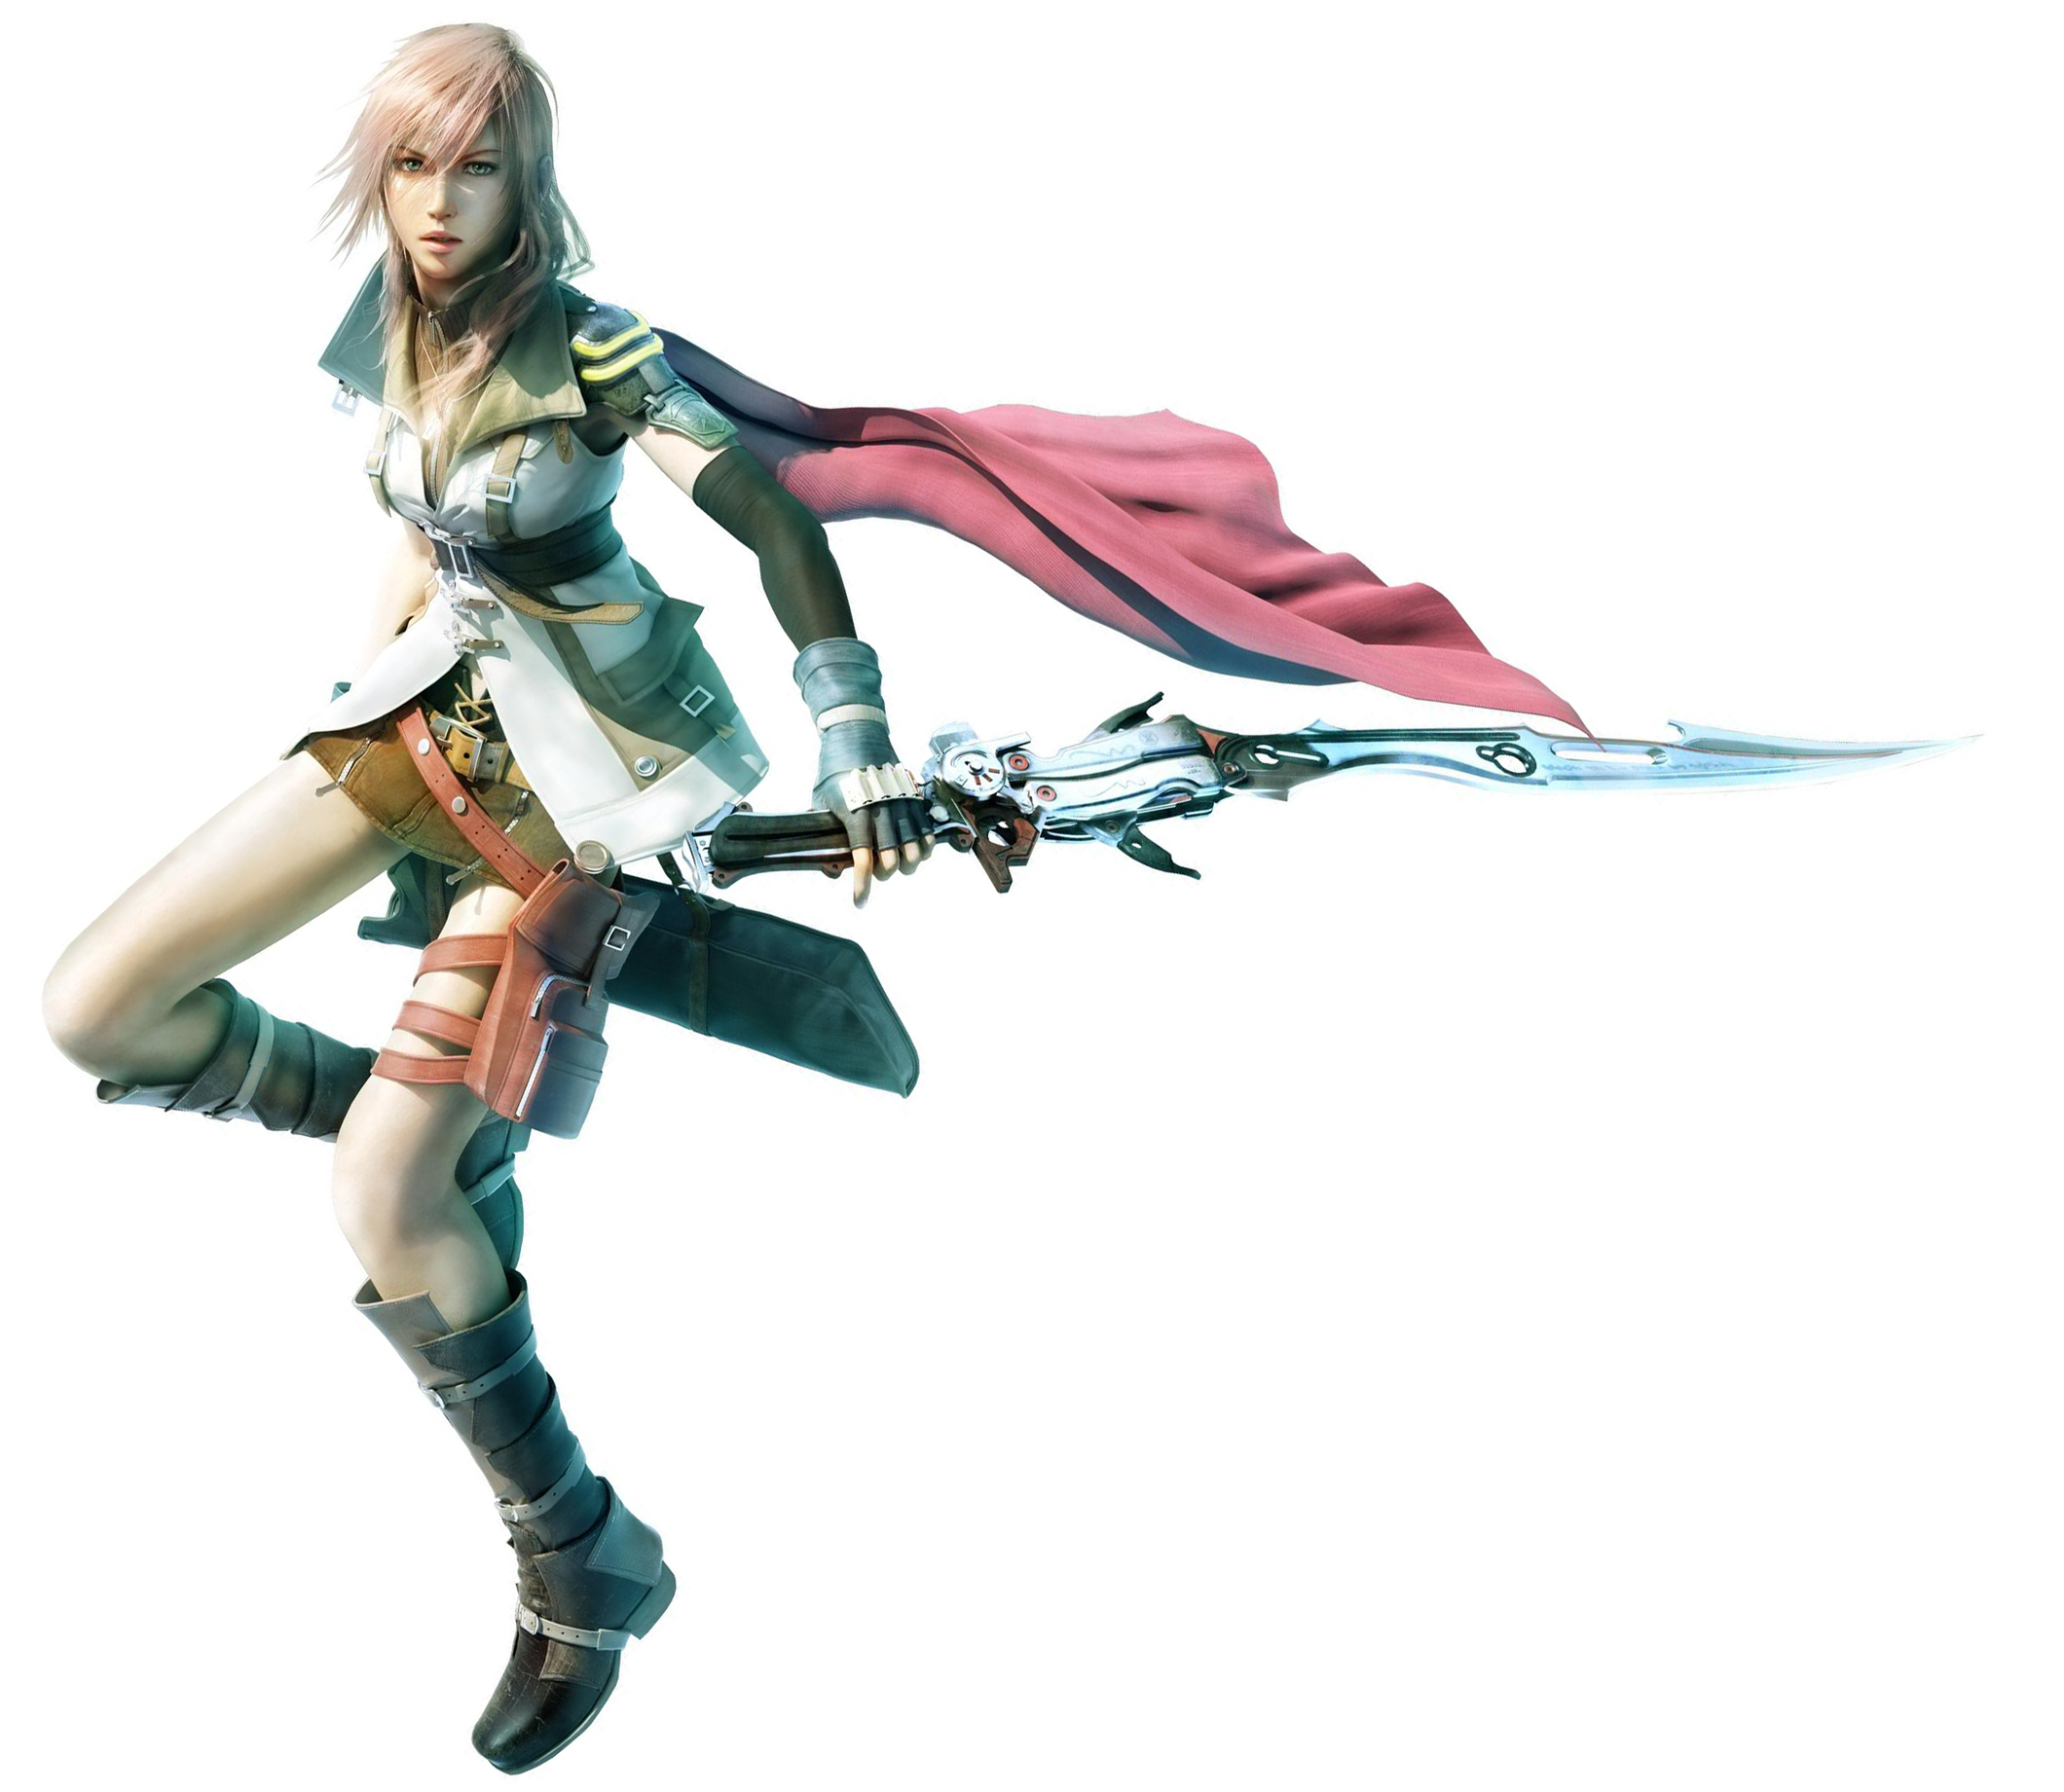 Final fantasy female characters wallpaper